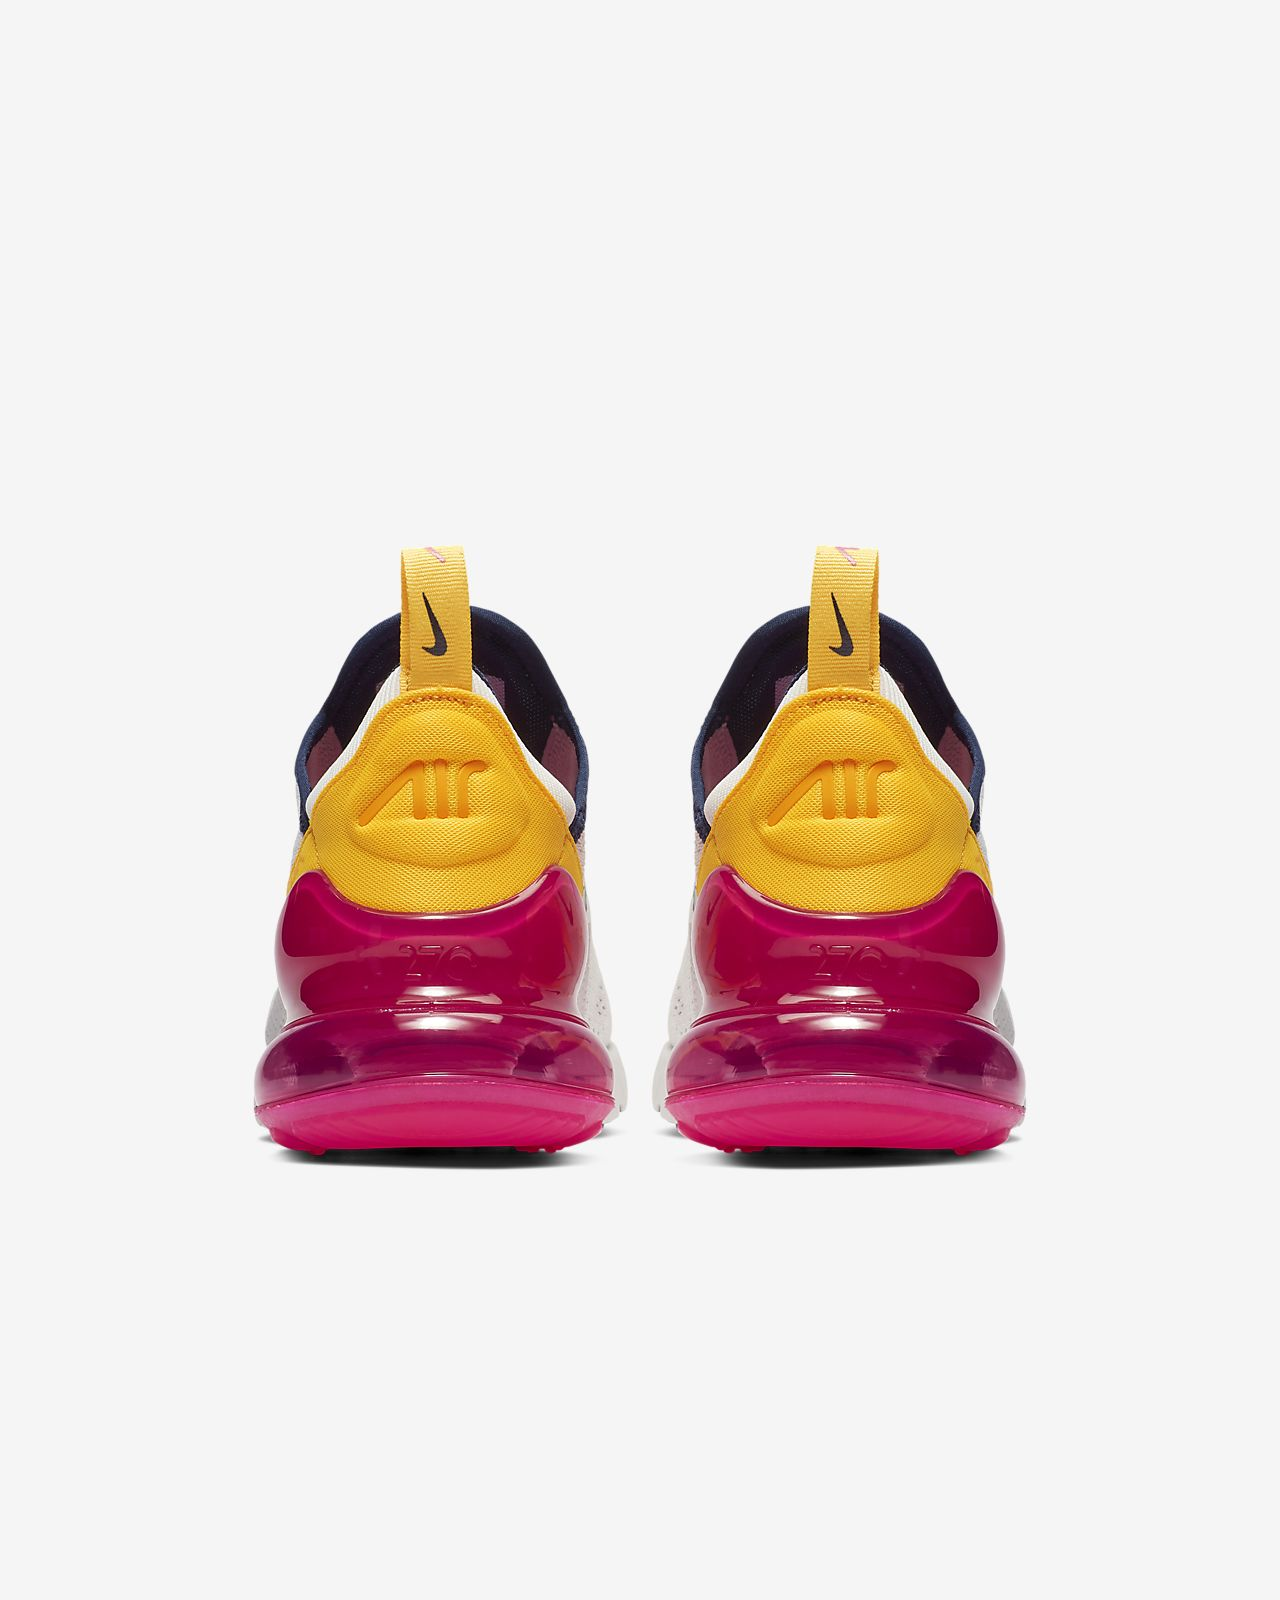 new products a8cdd 1bef5 ... Nike Air Max 270 Premium Women s Shoe